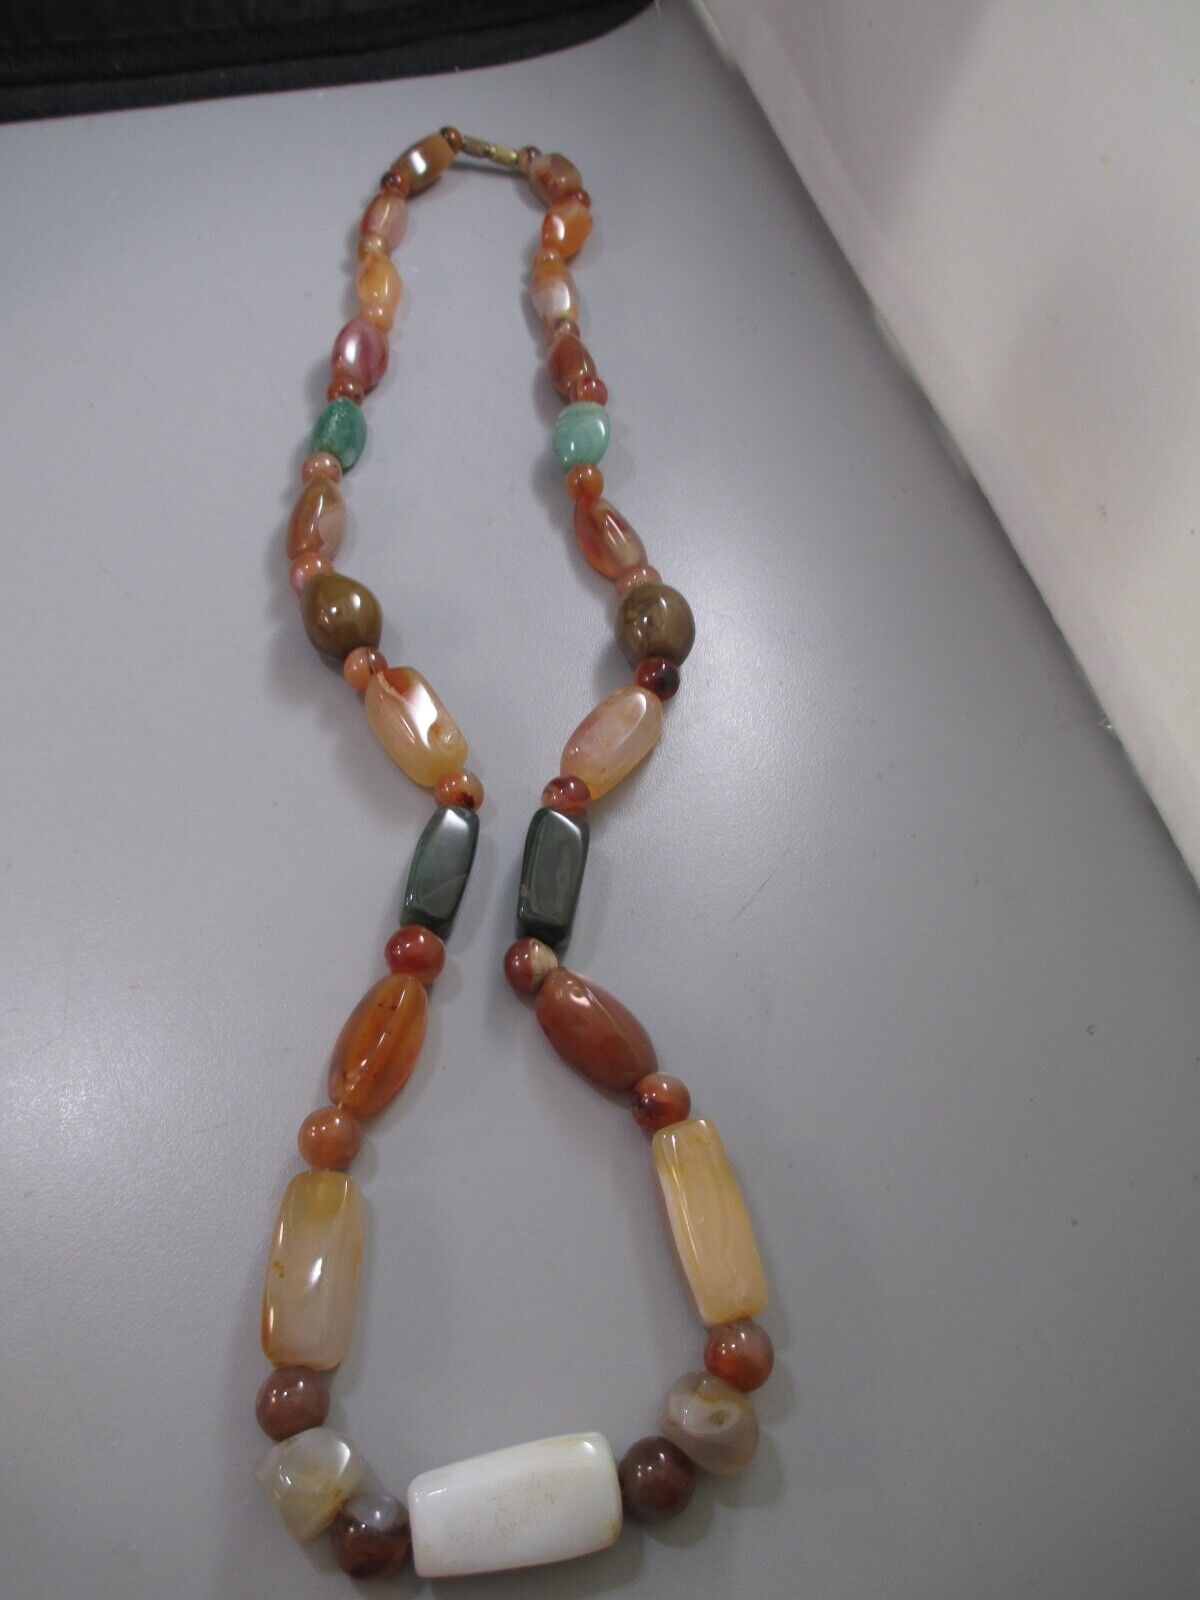 Vintage Genuine Agate Bead Necklace Hand Made  - $18.99